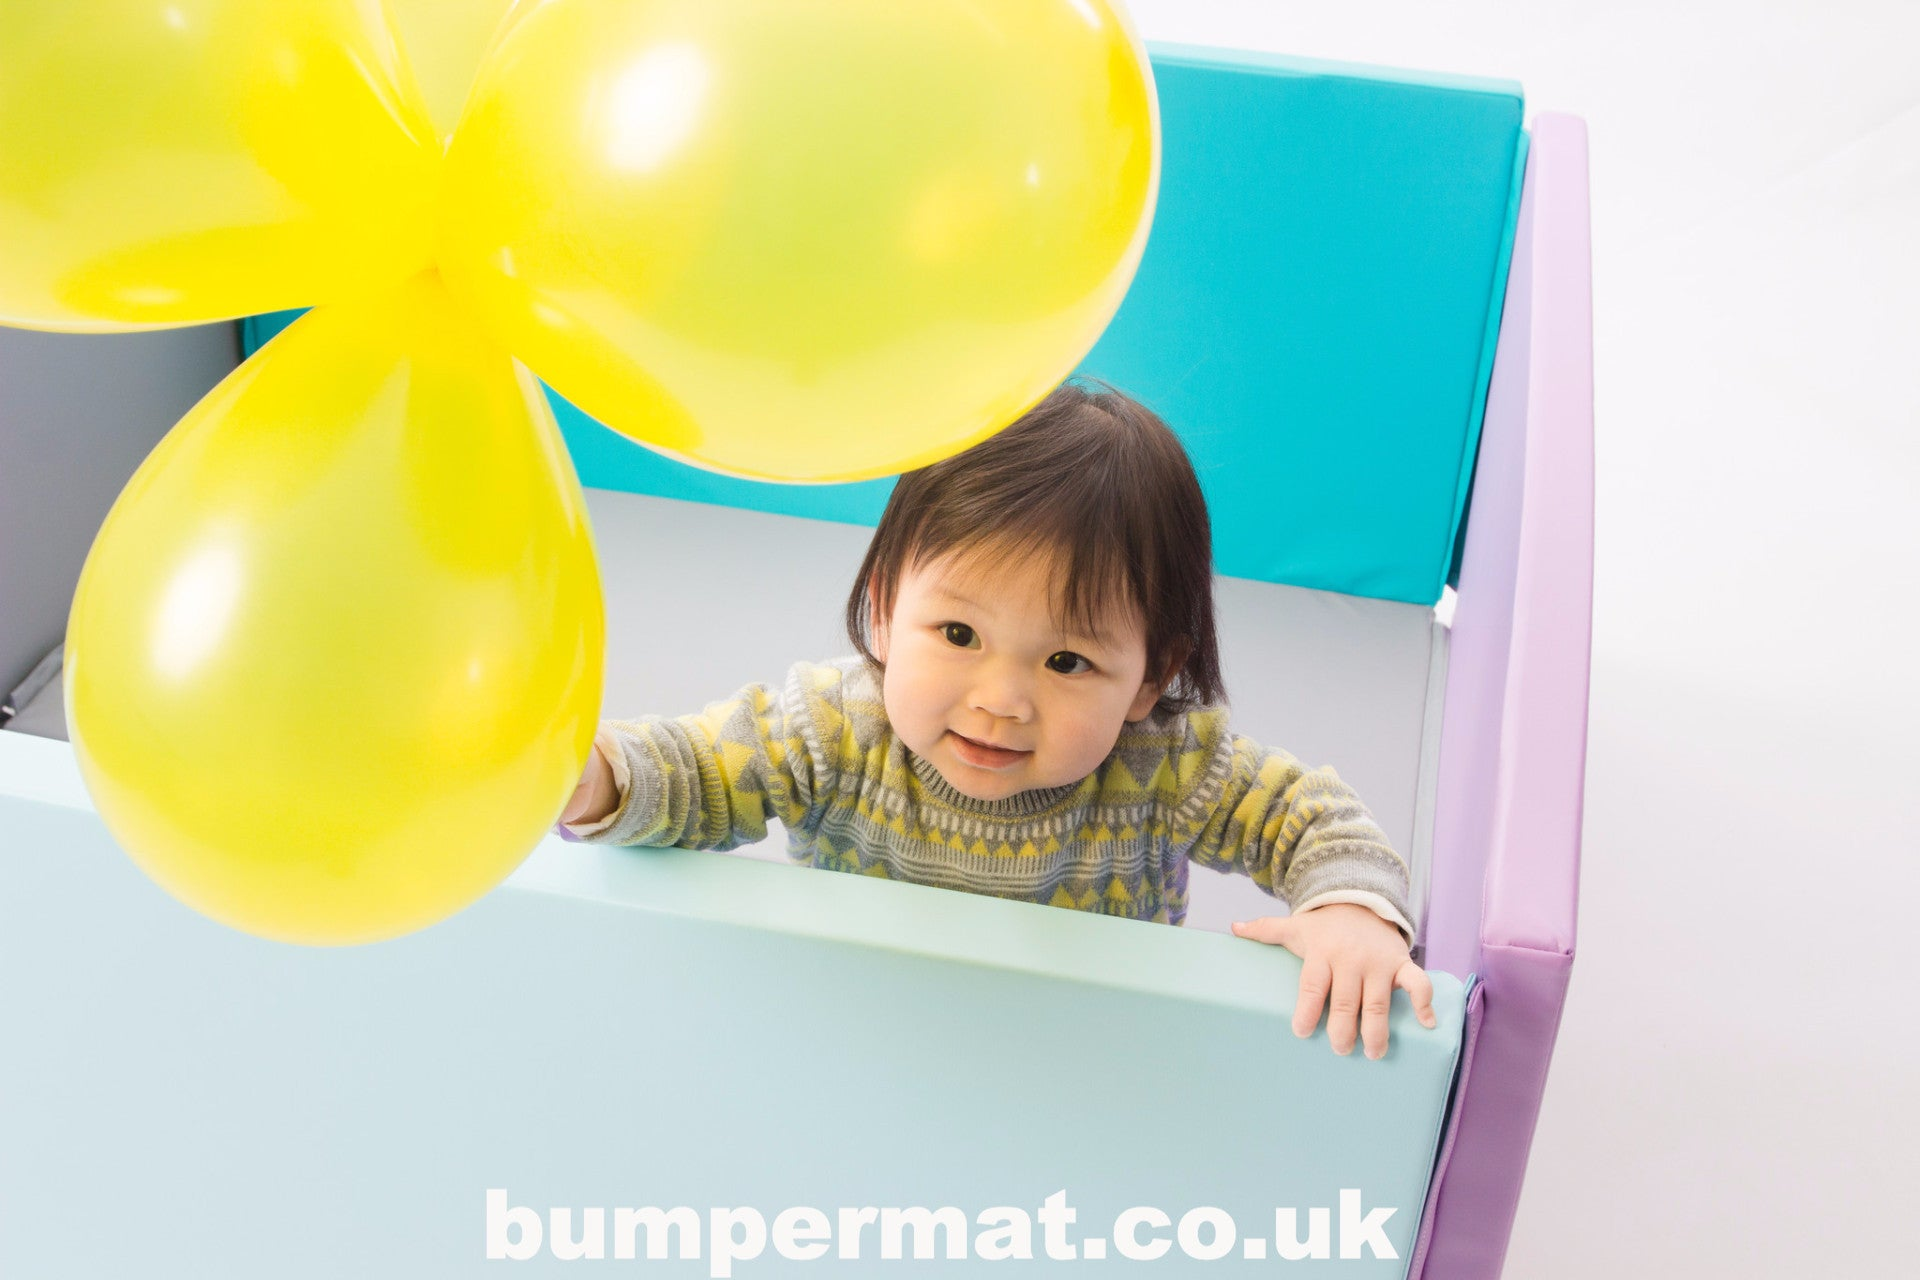 Bumpermat_soft playpen_baby playpen_playmat_play pen_ball pool_ball pit_Foldaway Bumpermat